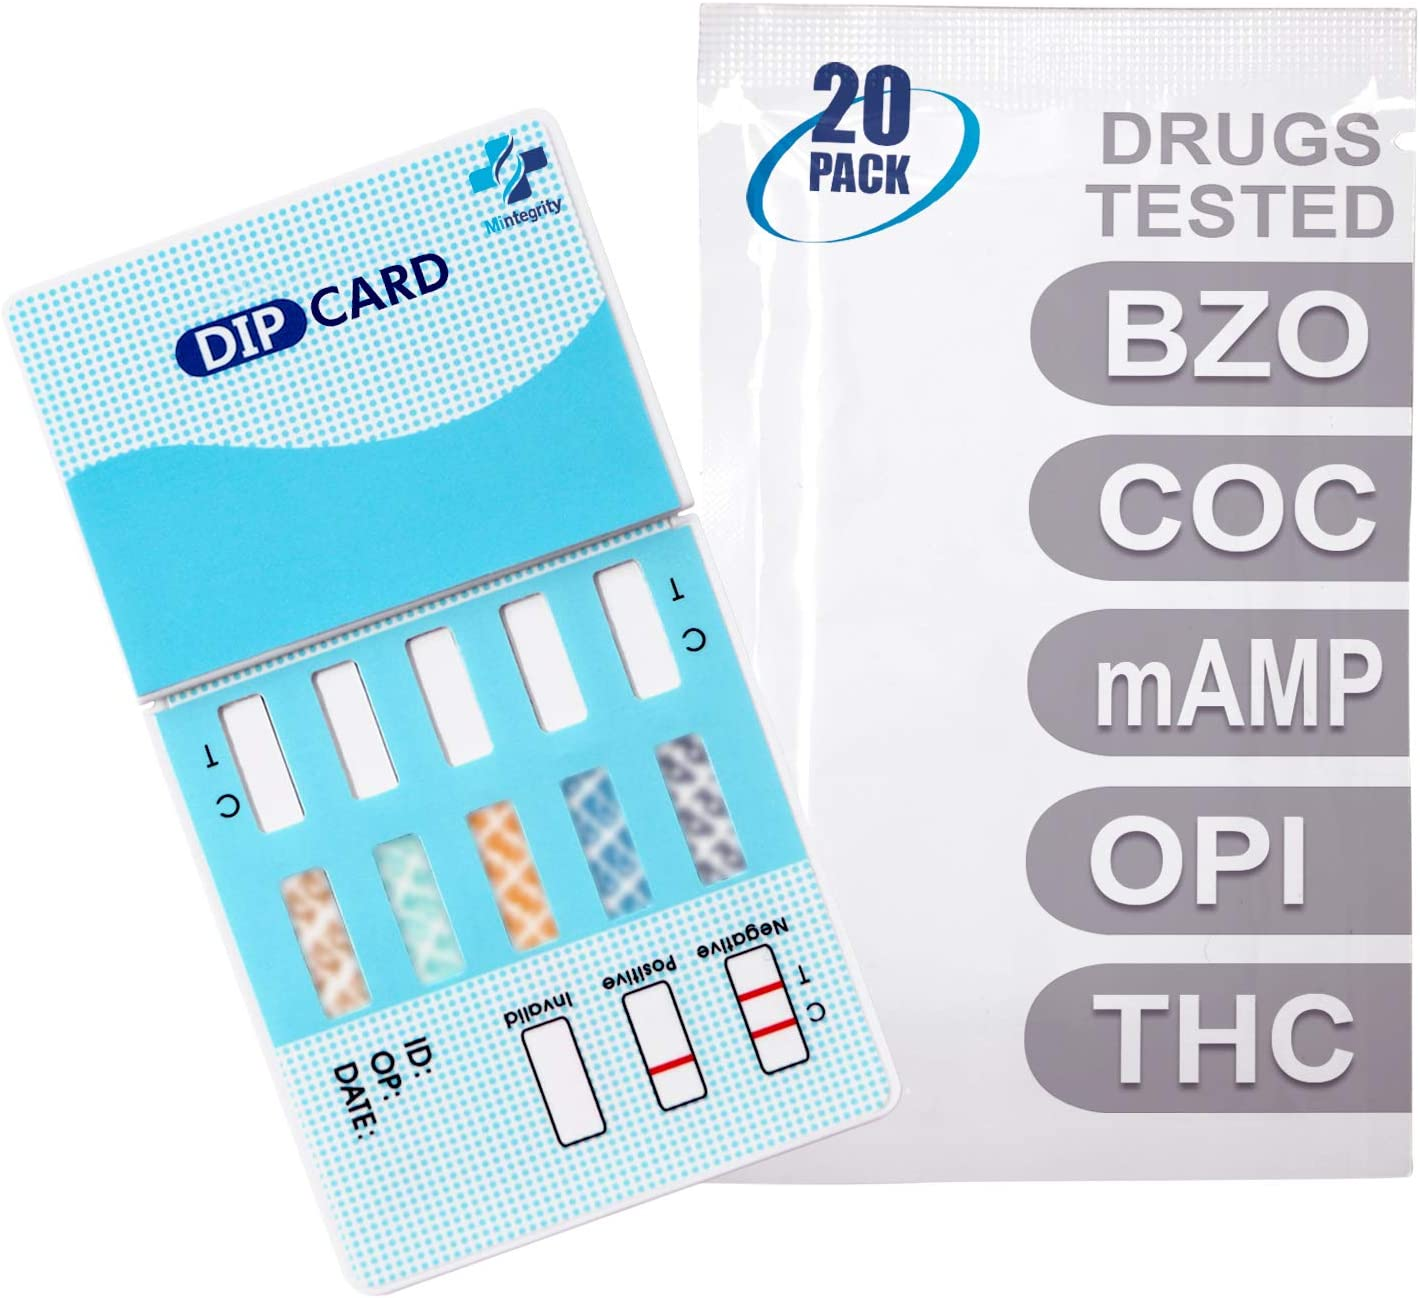 MiCare 20pk - 5-Panel Urine All items free shipping Drug Test OPI mAMP T Card COC BZO Fixed price for sale